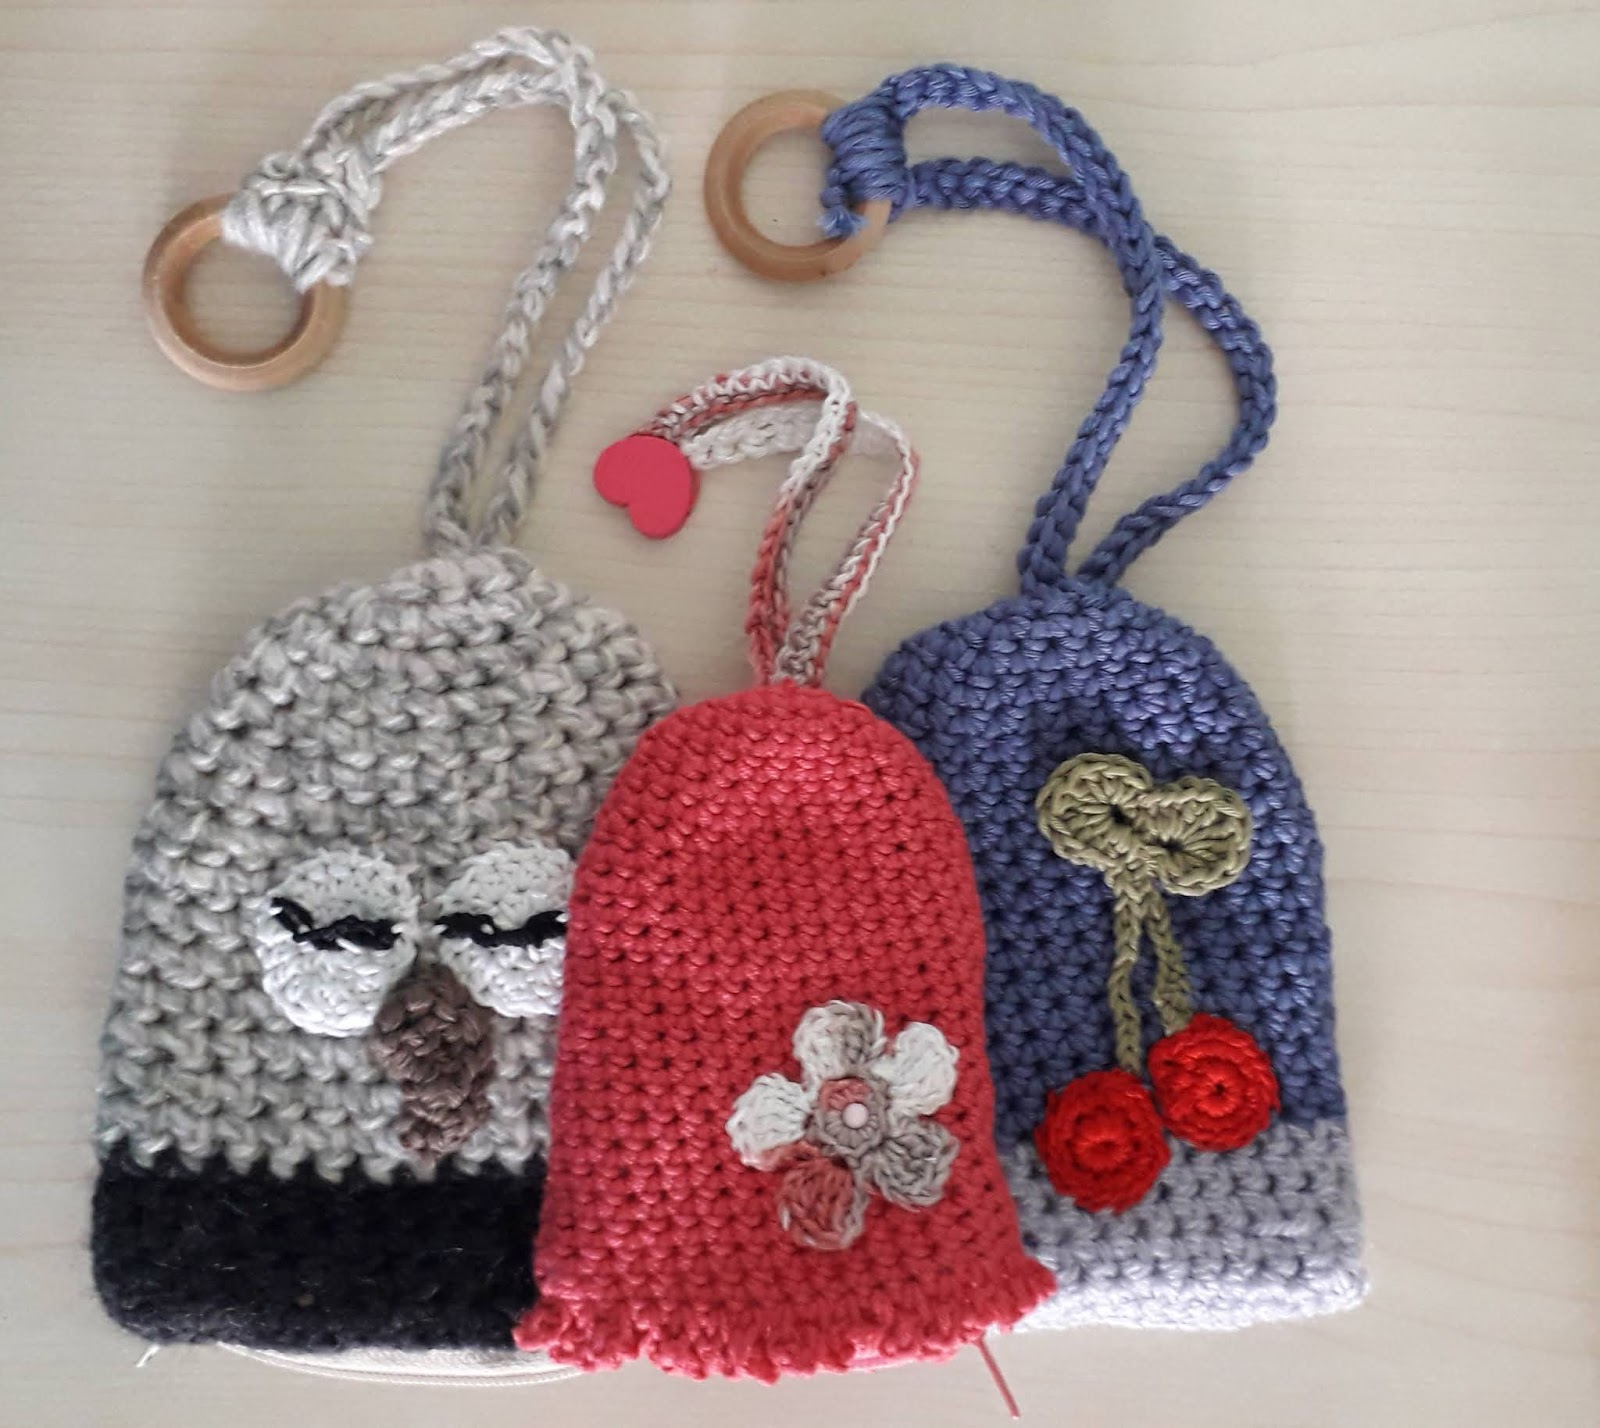 hight resolution of all those three key cover were made with the same pattern too the pink is made out of super soft baby cotton using 3mm crochet hook the blue was made